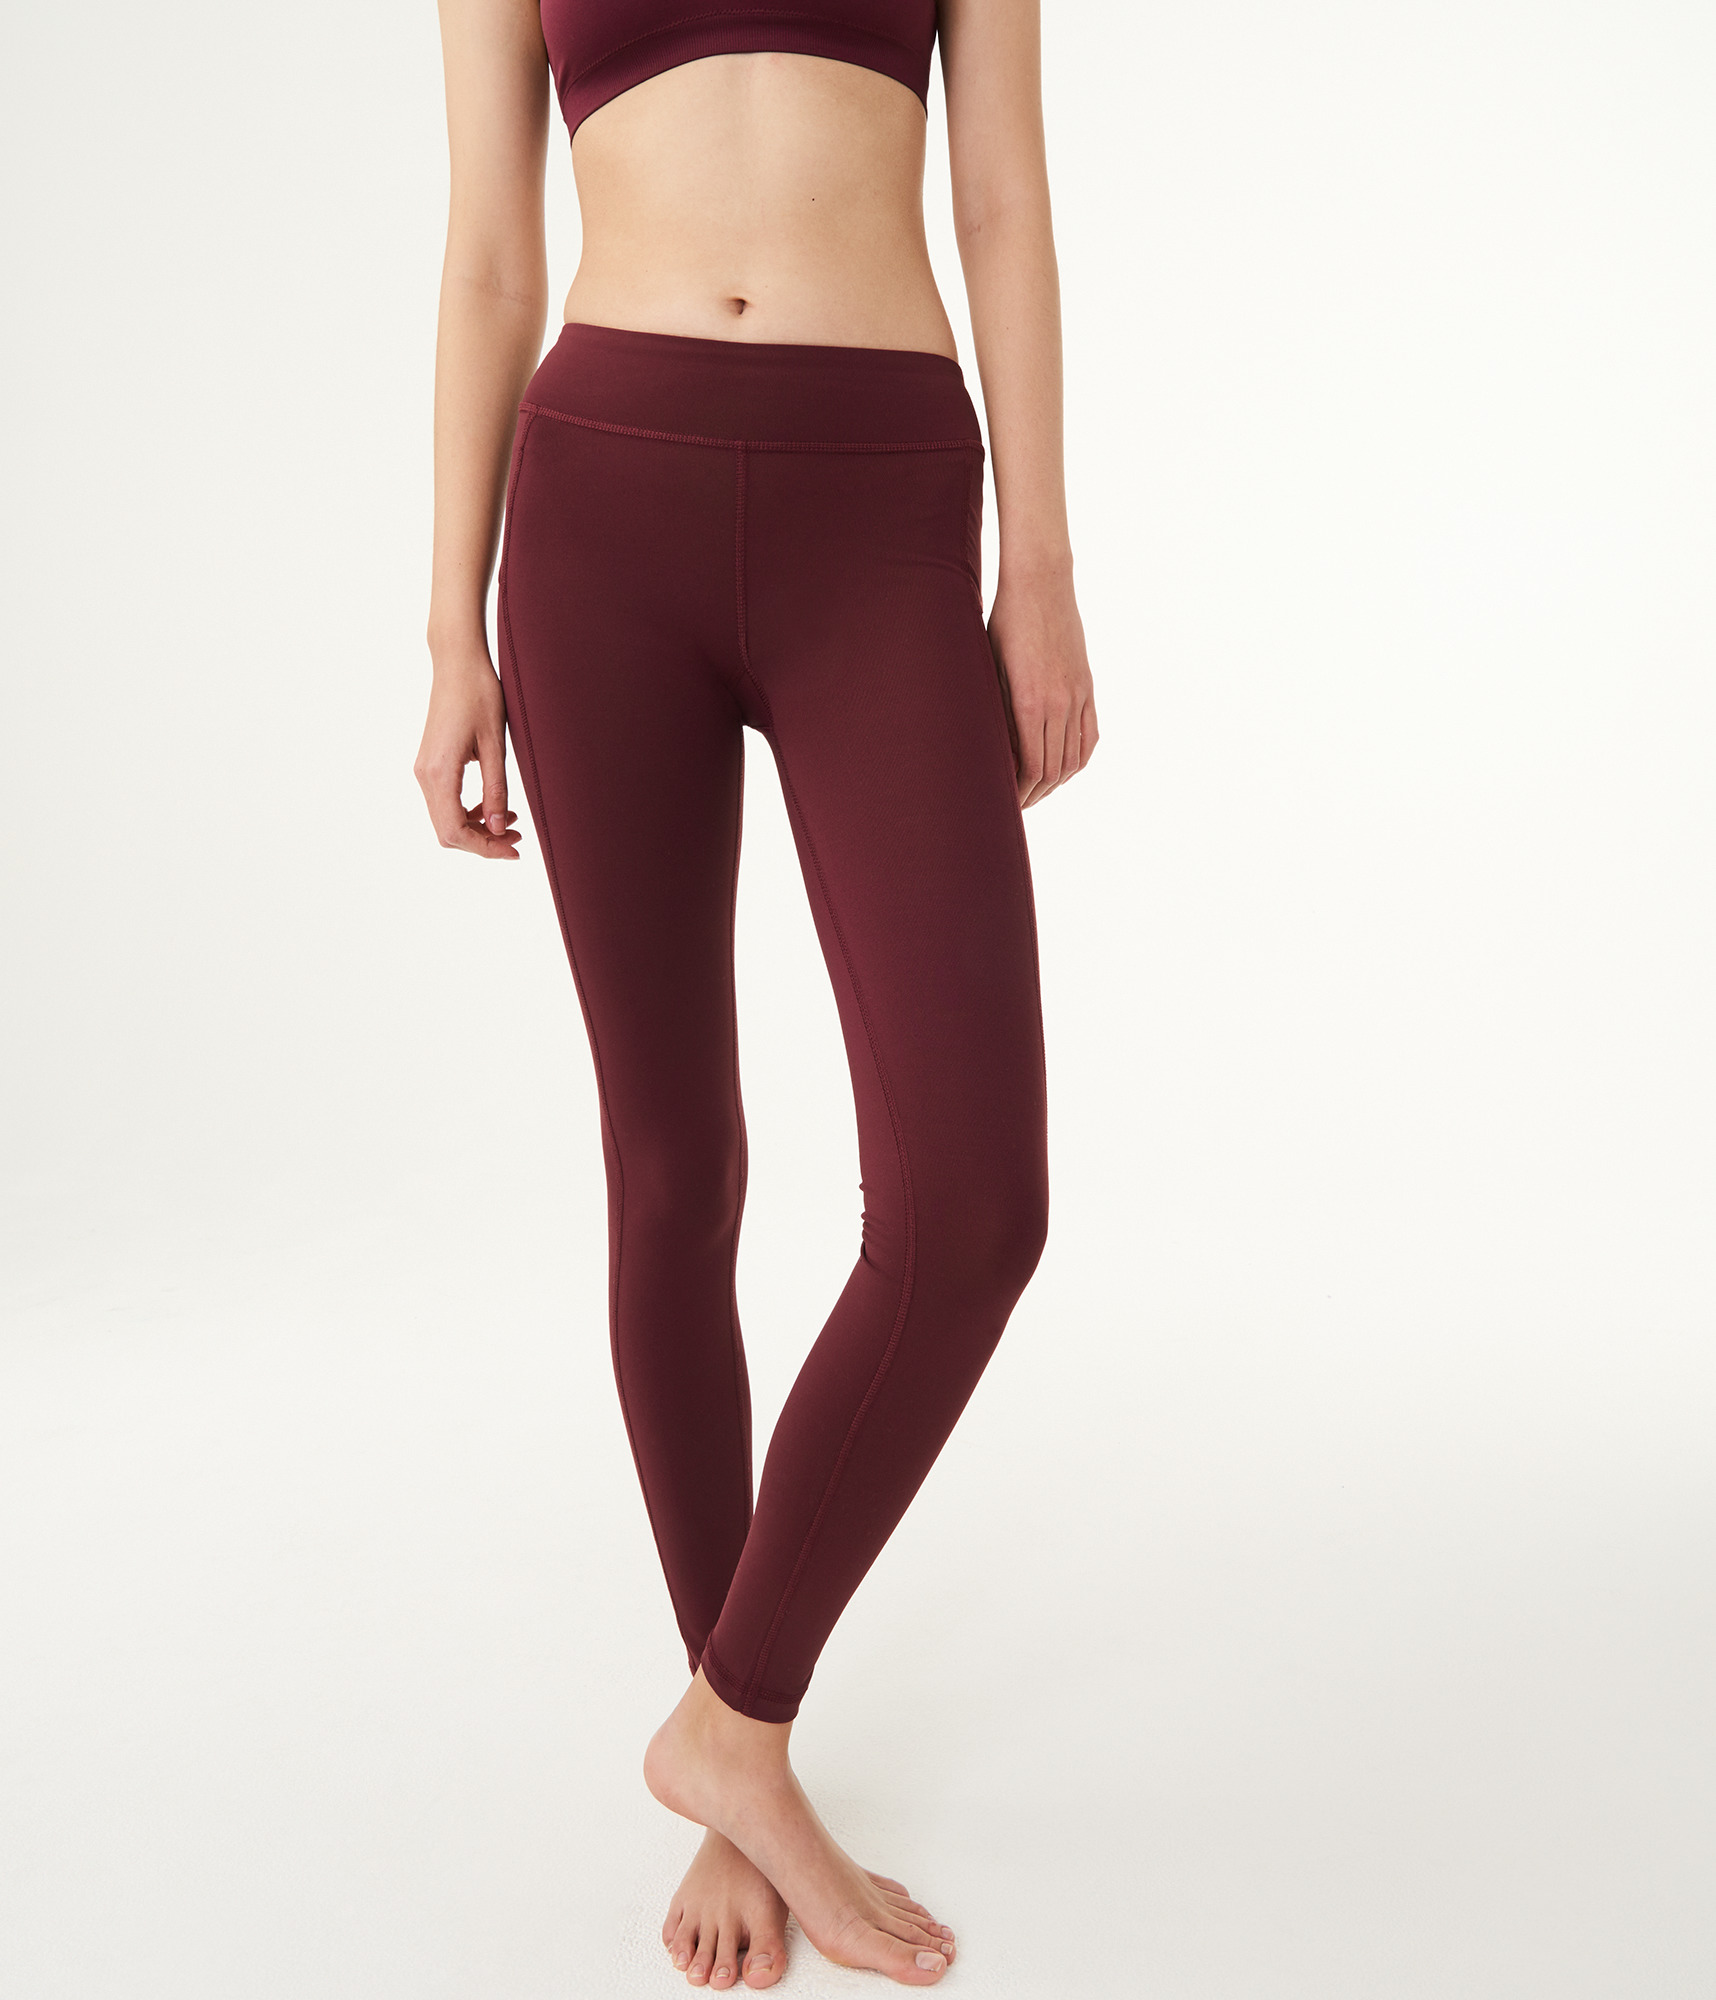 902954f7a2e Details about aeropostale womens lld best booty ever solid leggings